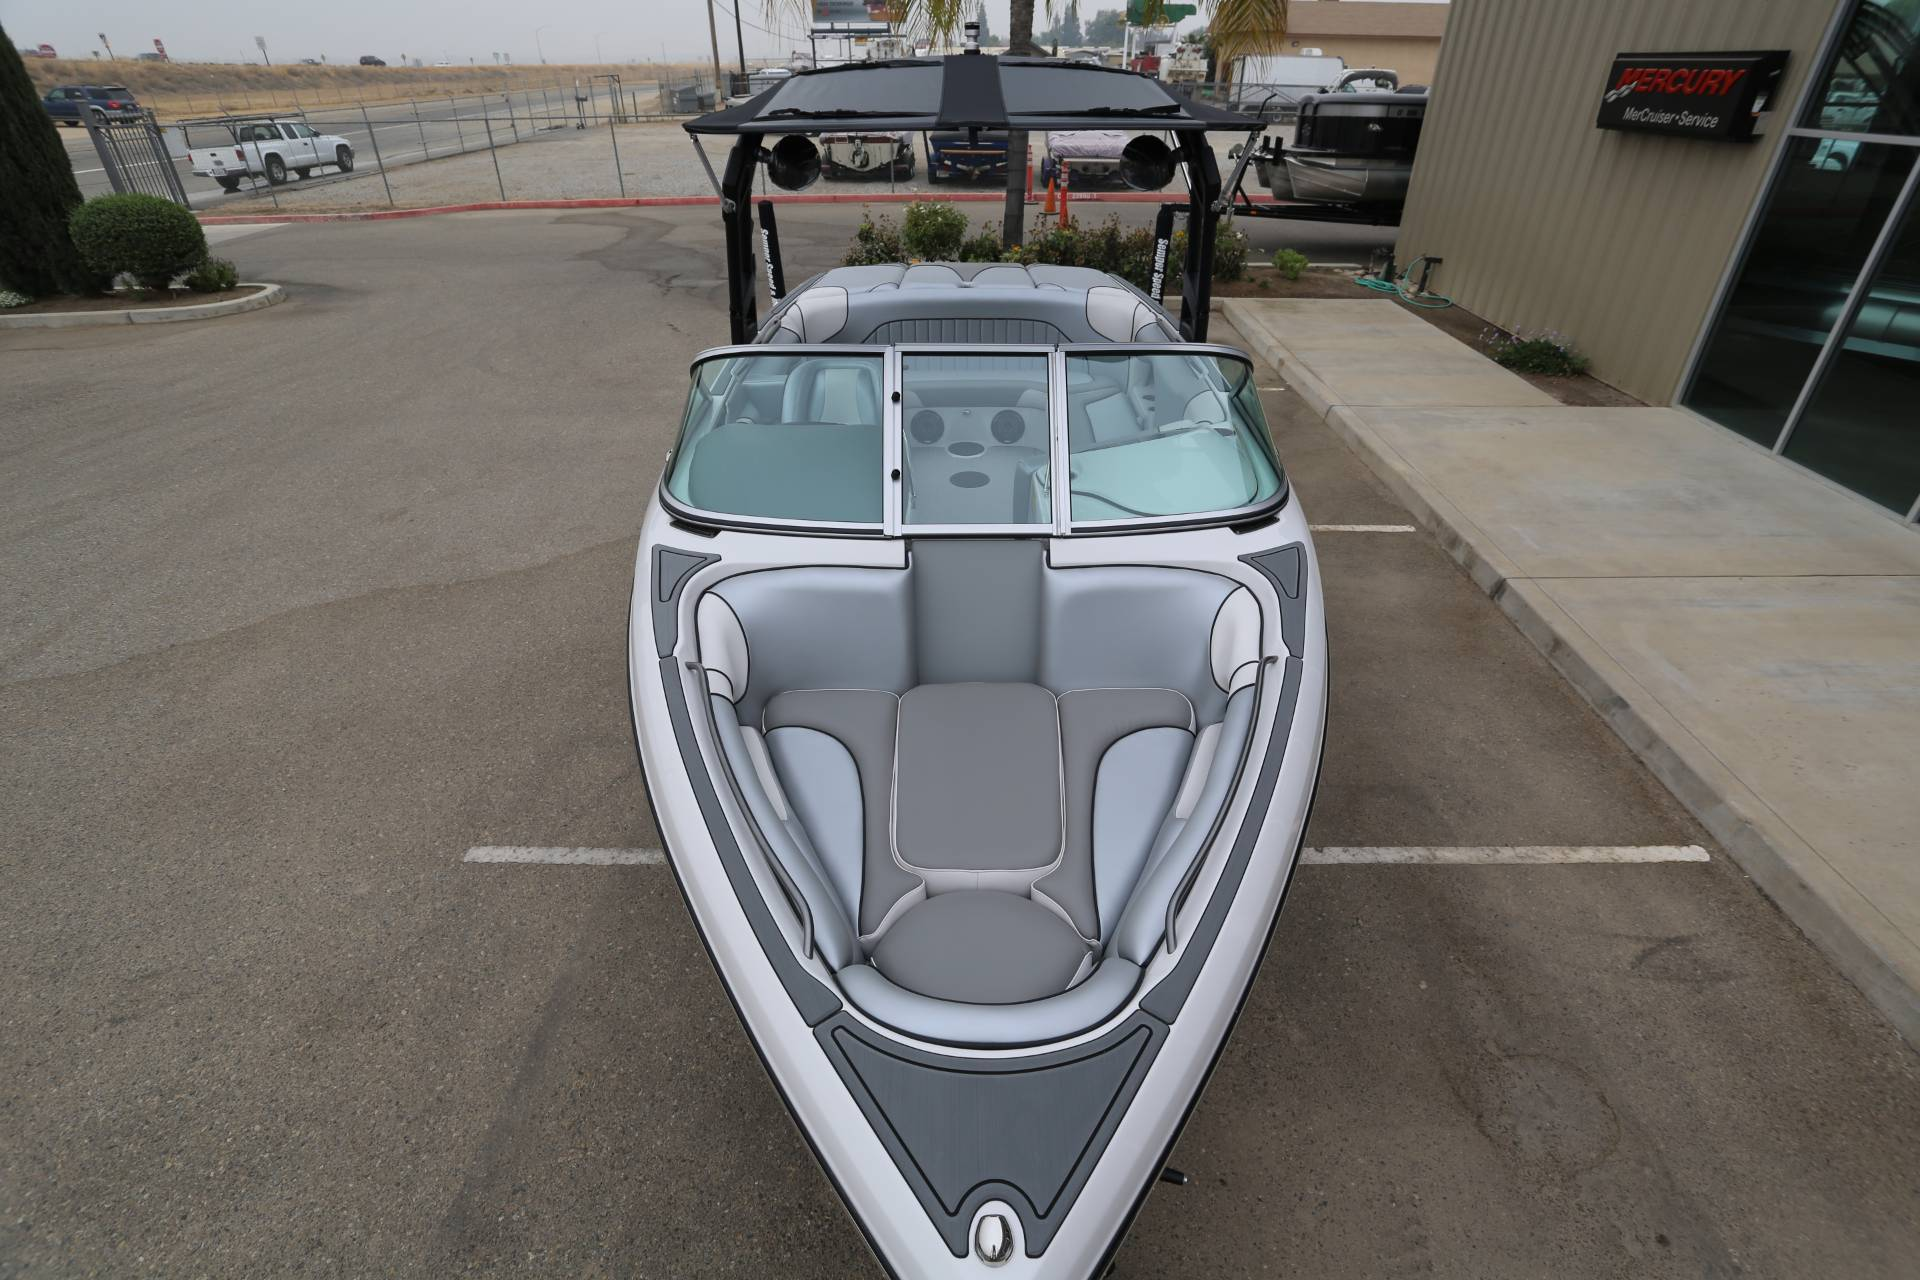 2021 Sanger Boats V215 SX in Madera, California - Photo 13